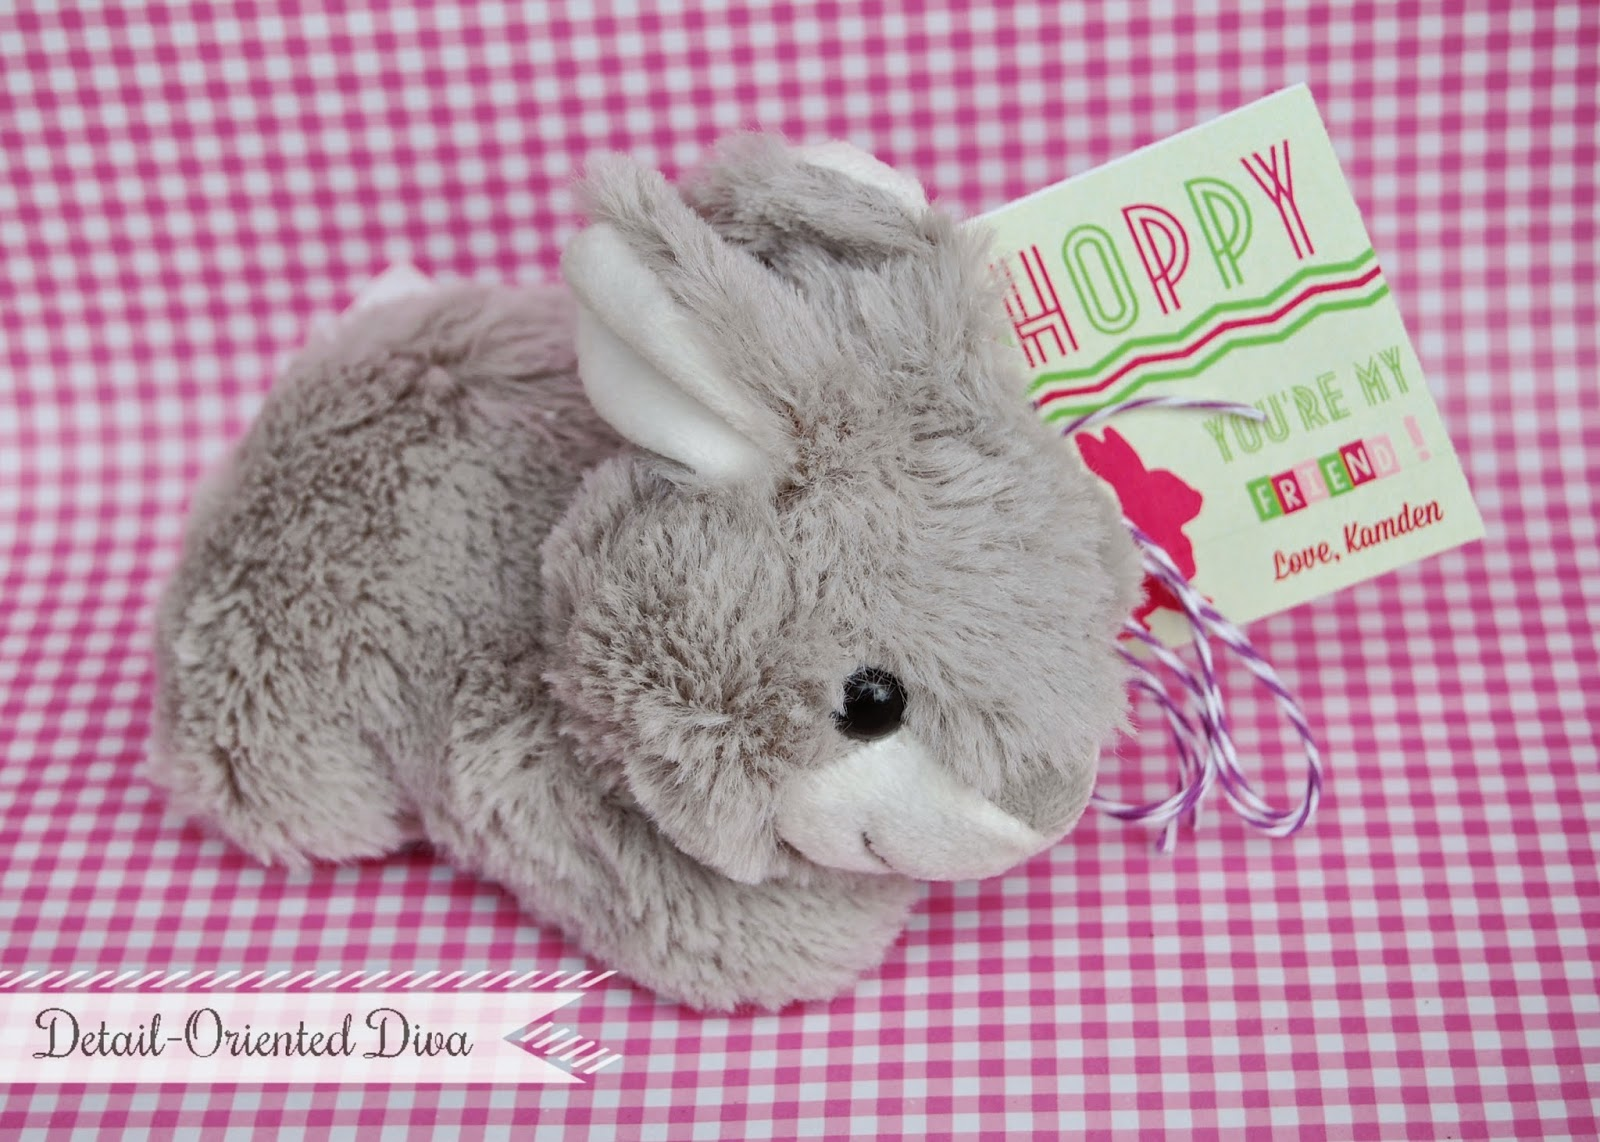 detail oriented diva just the printable and print have your special little one sign the card their own handprint bunny instructions for how to make your